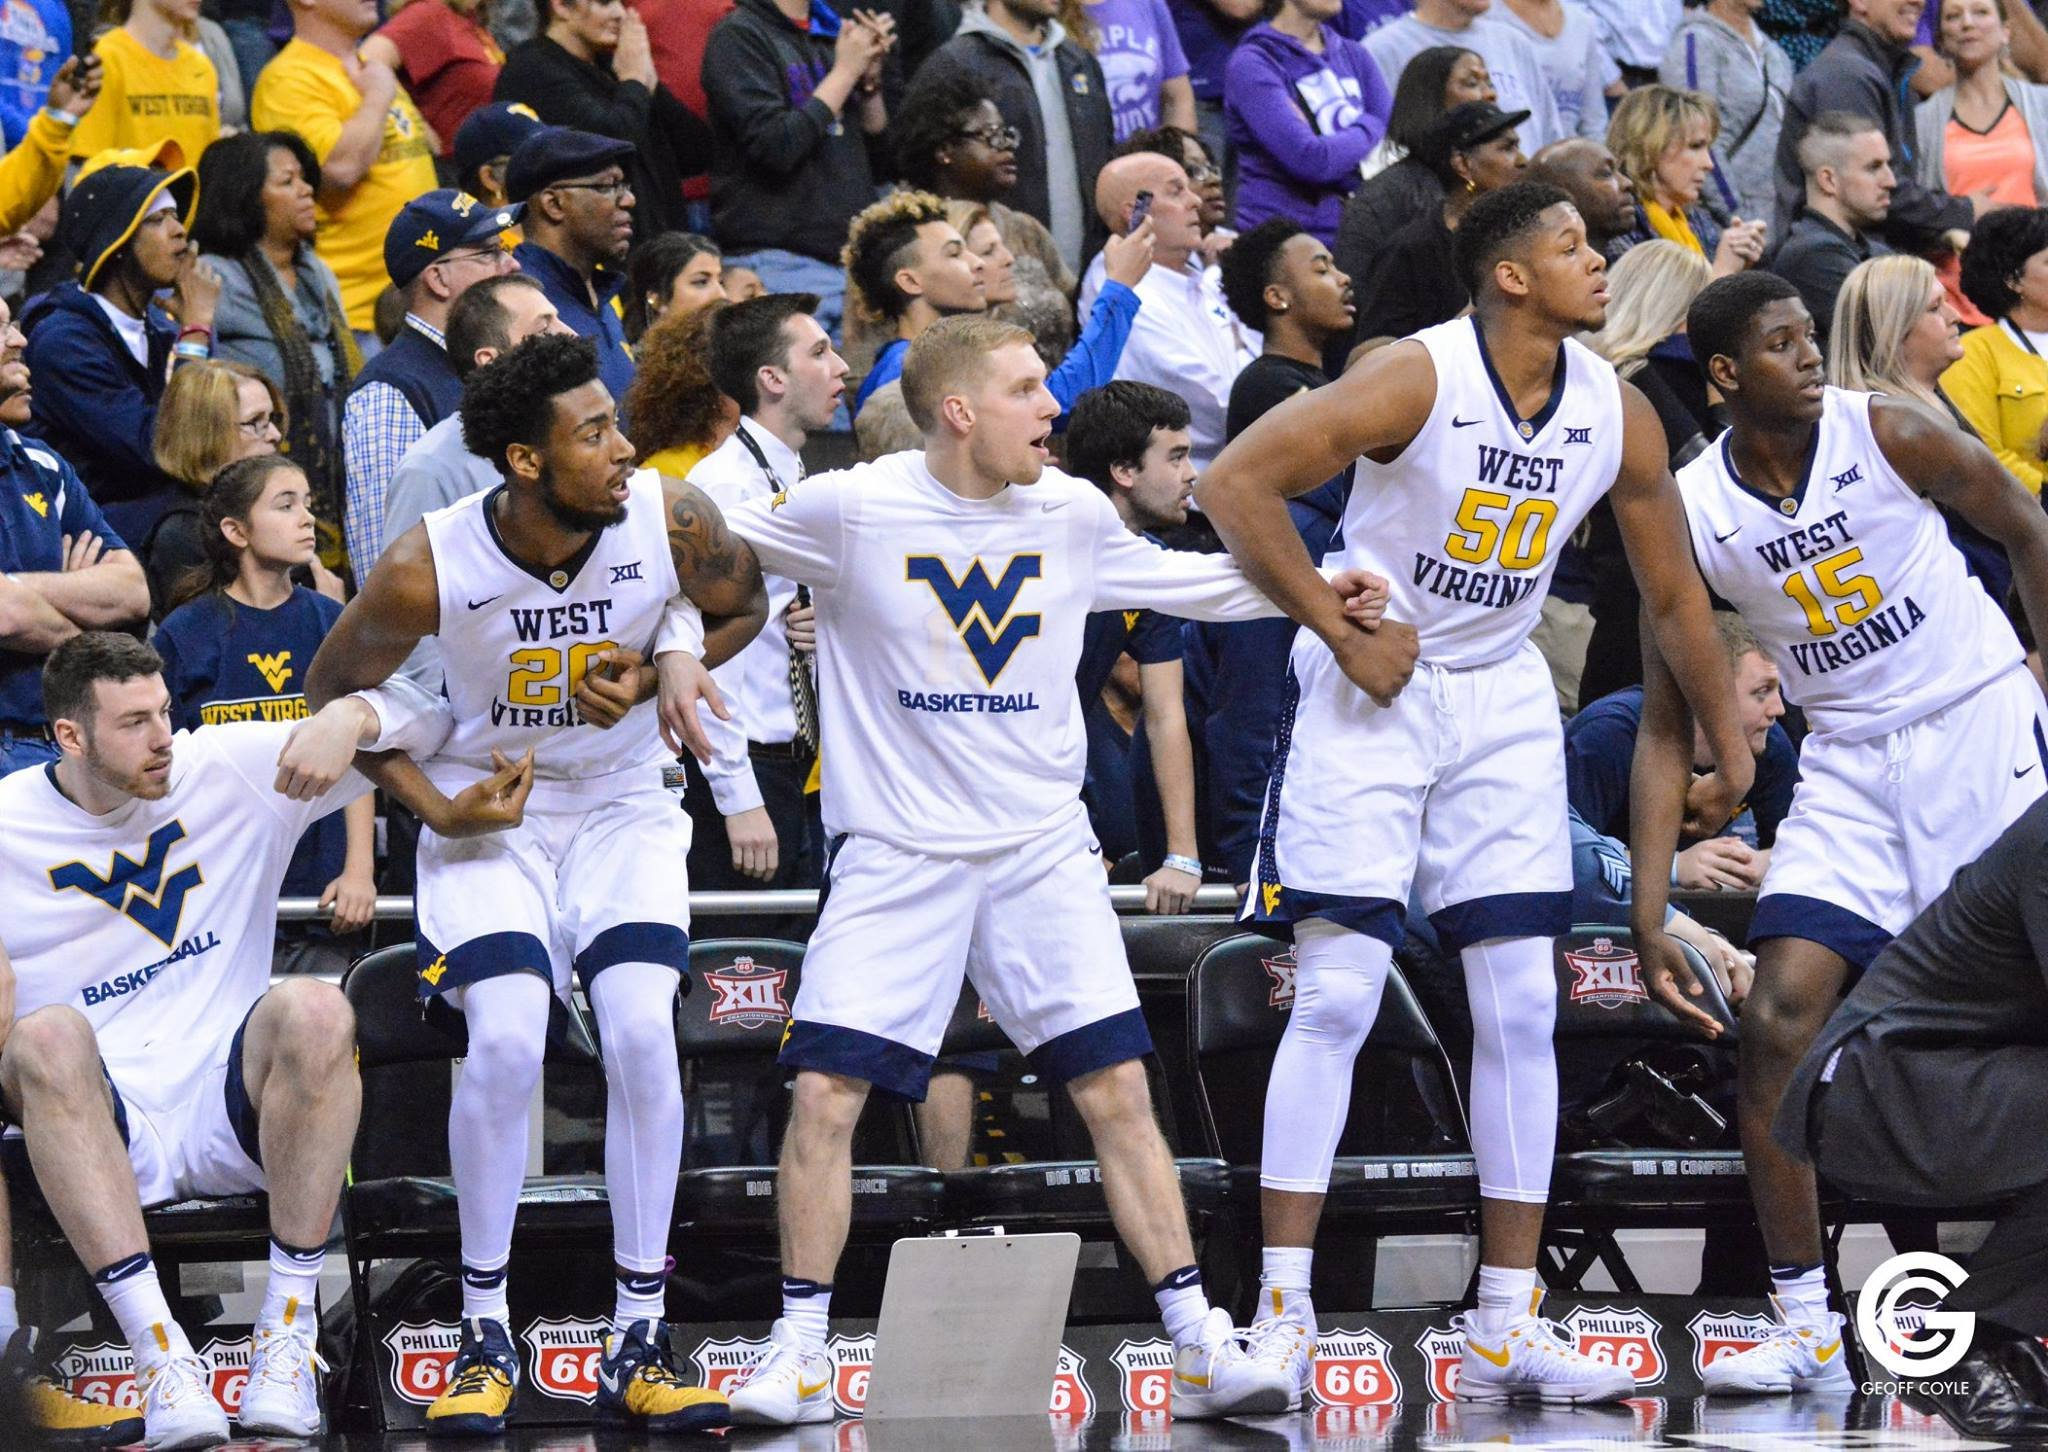 The WVU bench watches the final Kansas State possession as the Mountaineers beat the Wildcats 51-50 in the Big 12 semifinal. (PHOTO: Geoff Coyle)